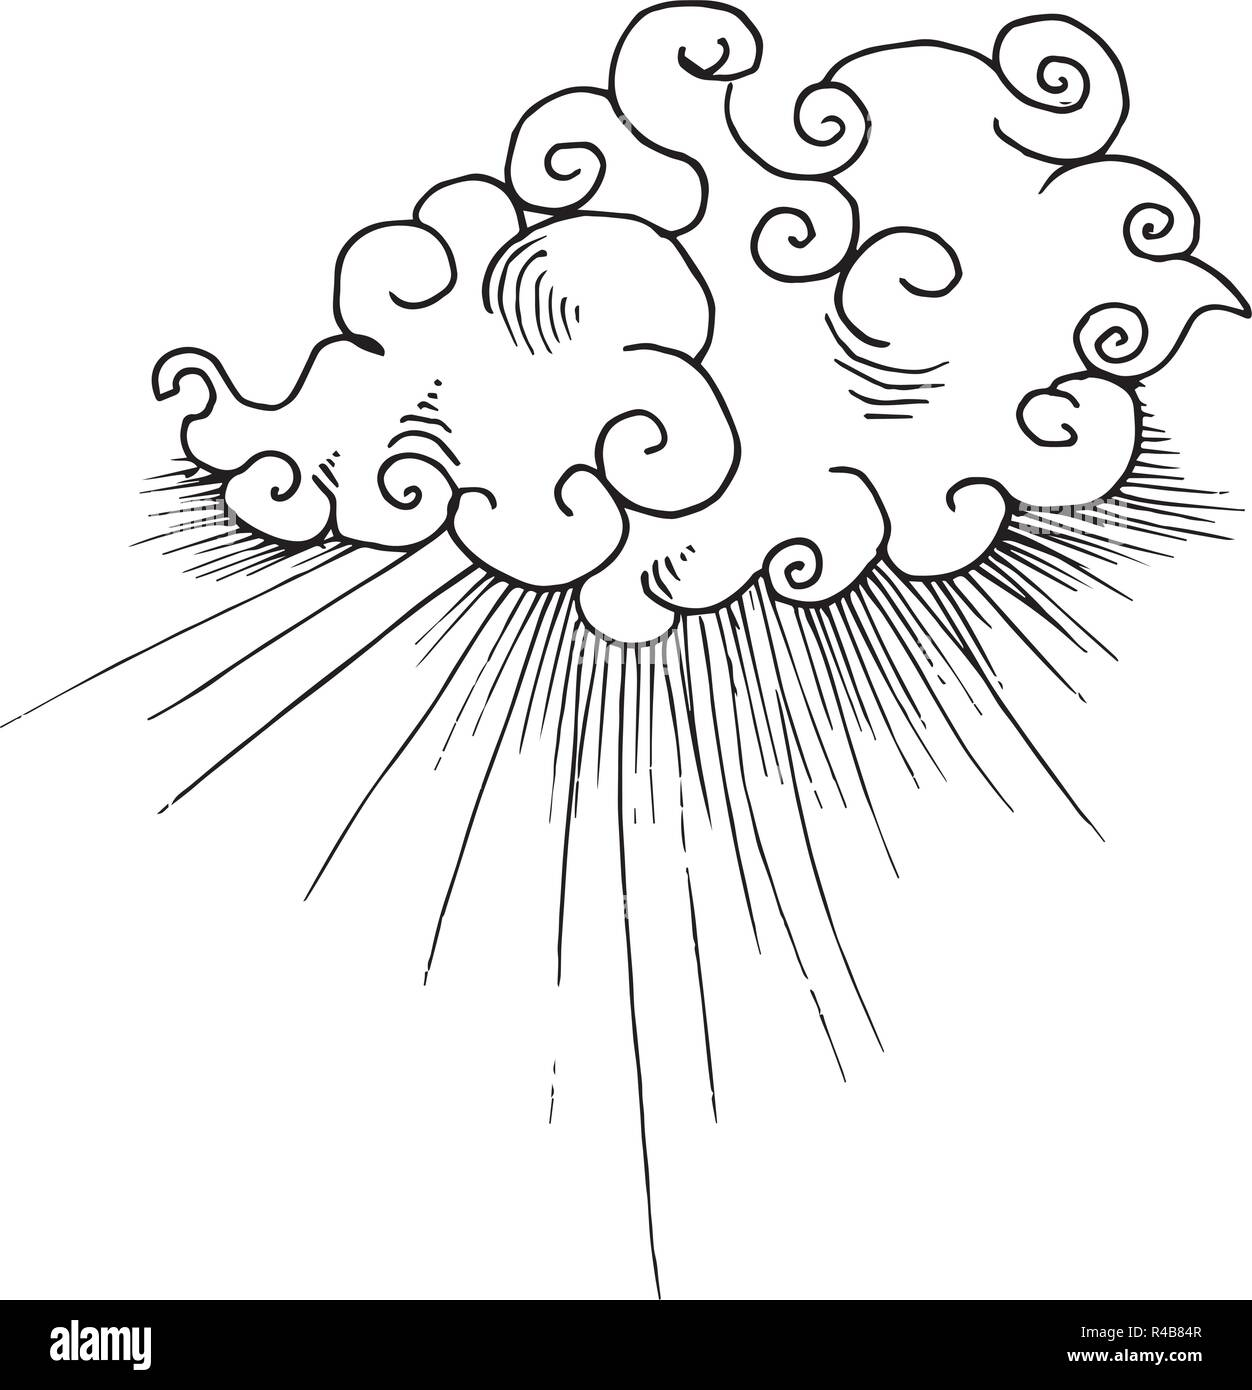 Black and white illustration of Chinese clouds and rays of light. - Stock Image